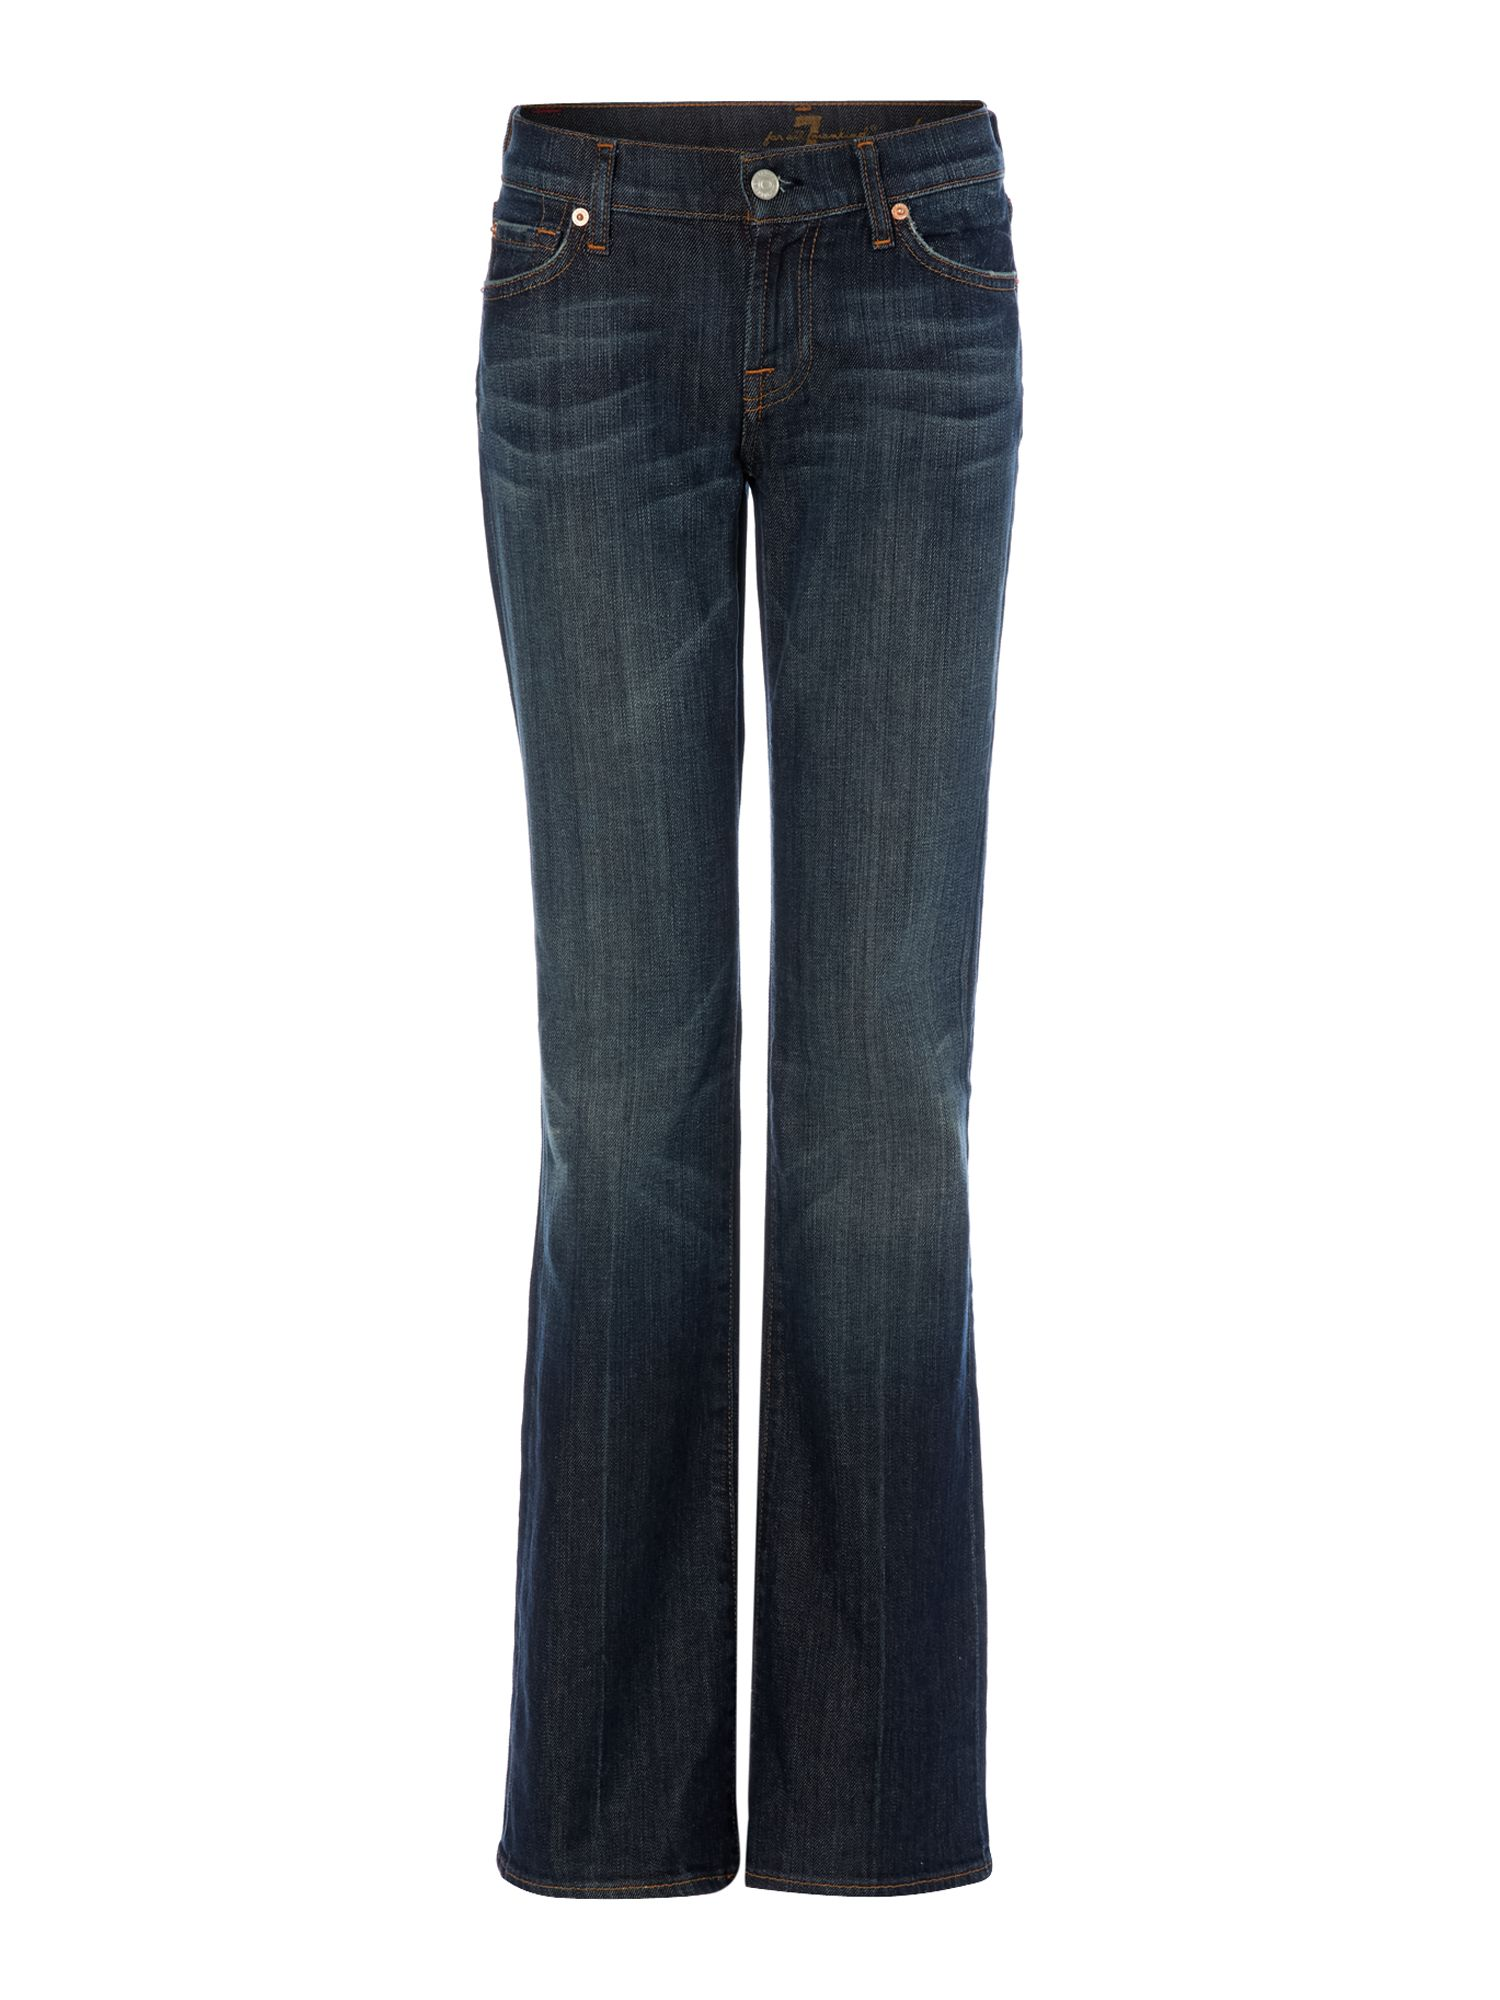 7 For All Mankind 7 For All Mankind Bootcut jeans in New York Dark, Denim Mid Wash